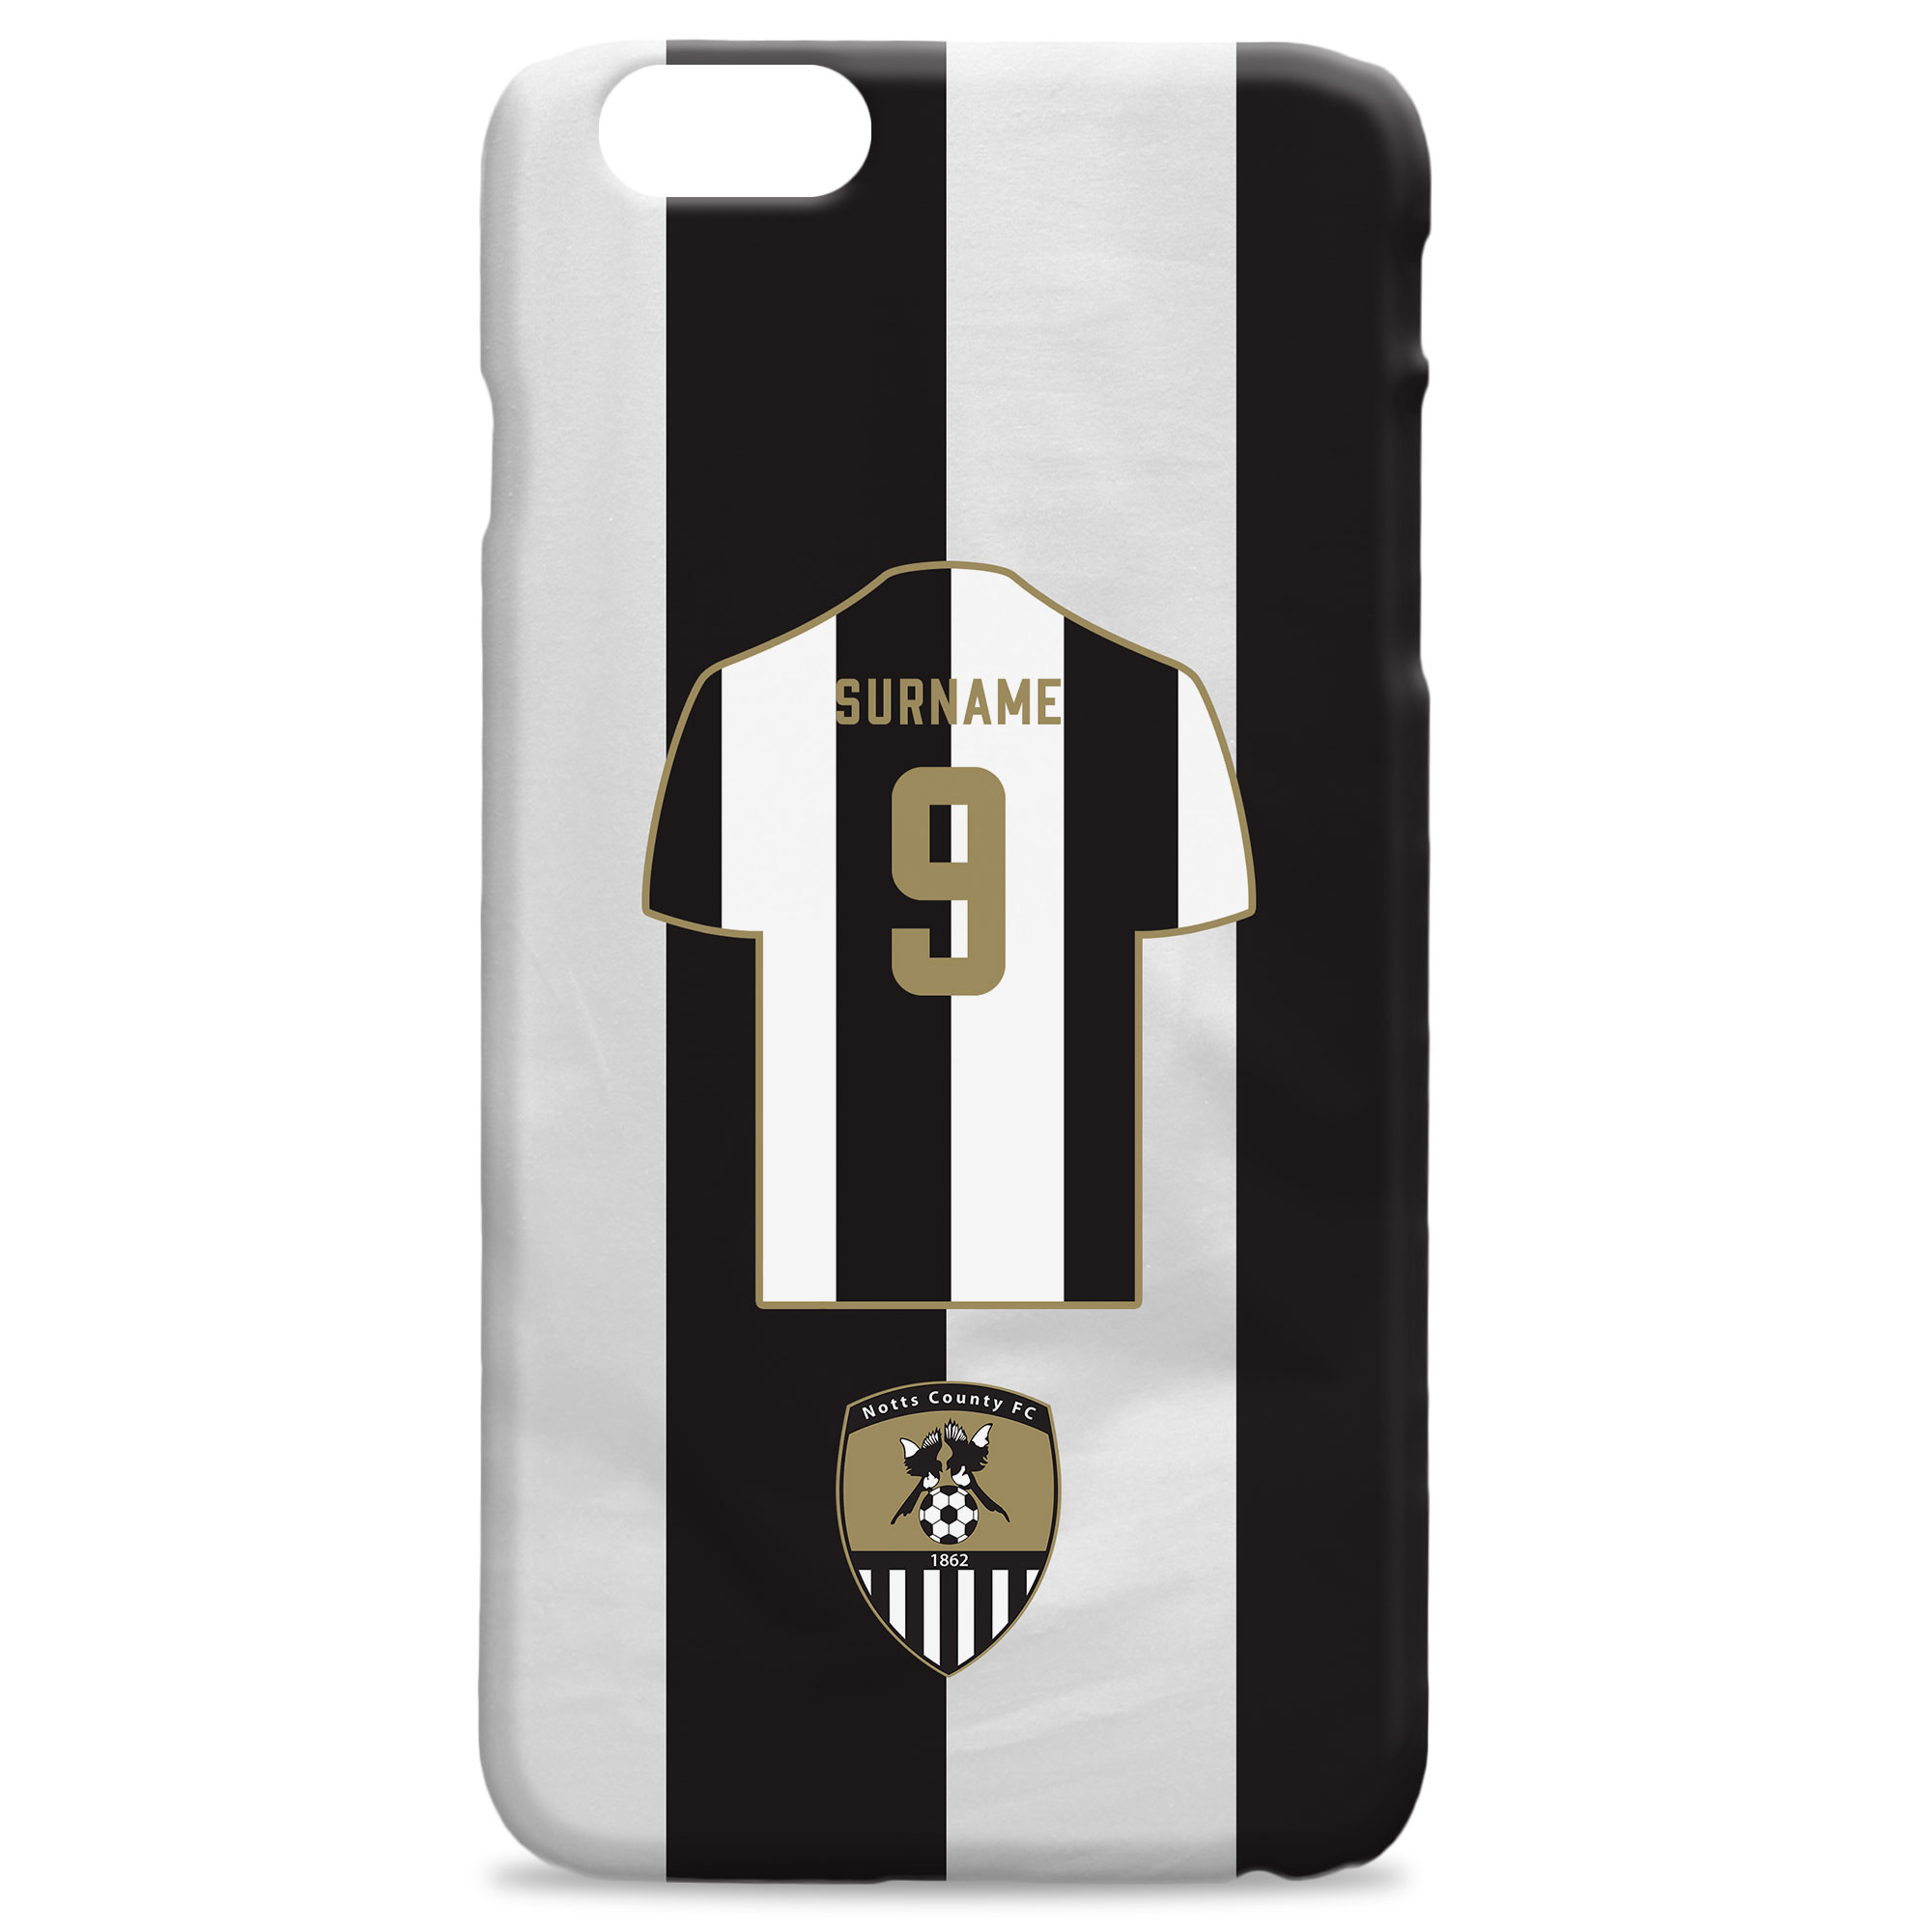 Notts County FC Shirt Hard Back Phone Case